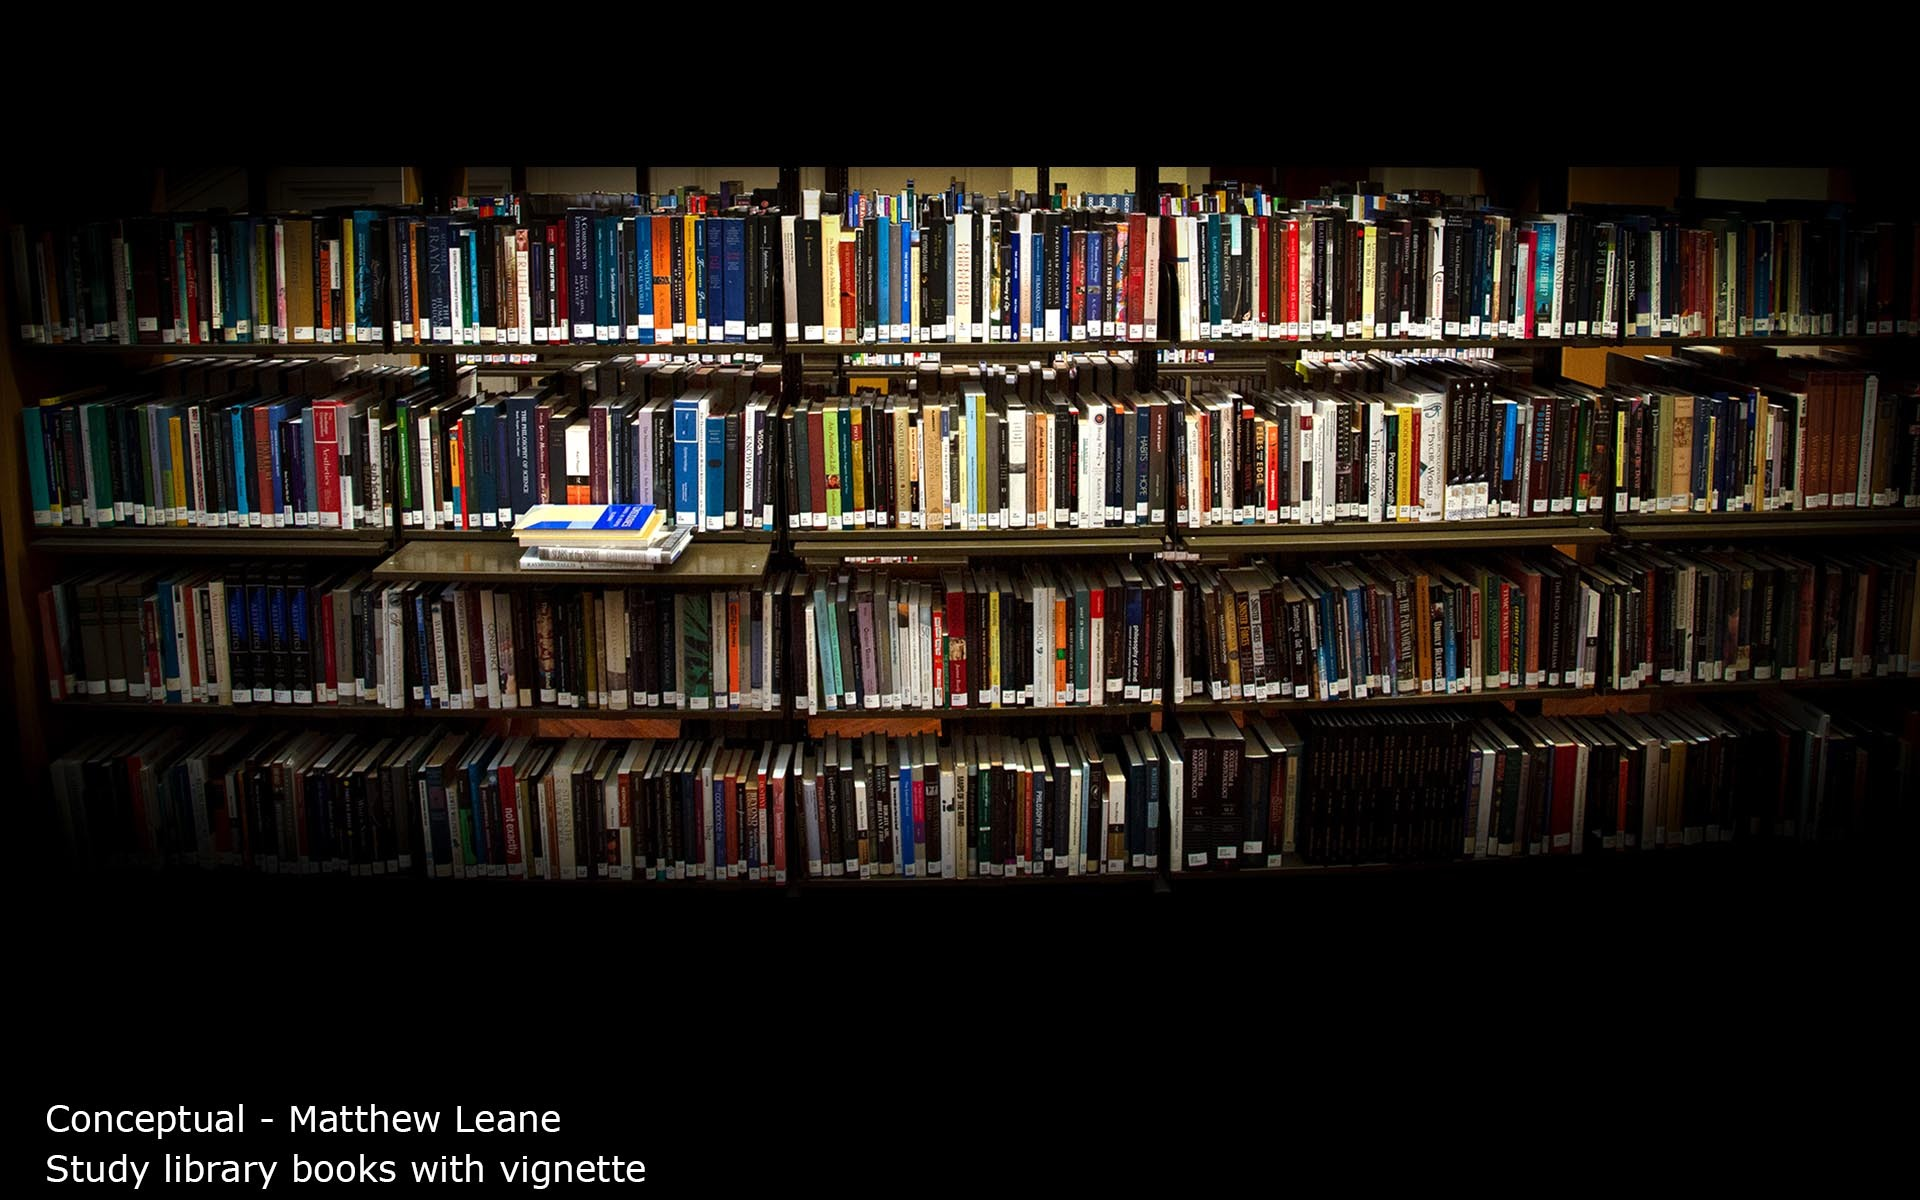 Study library books with vignette - Matthew Leane